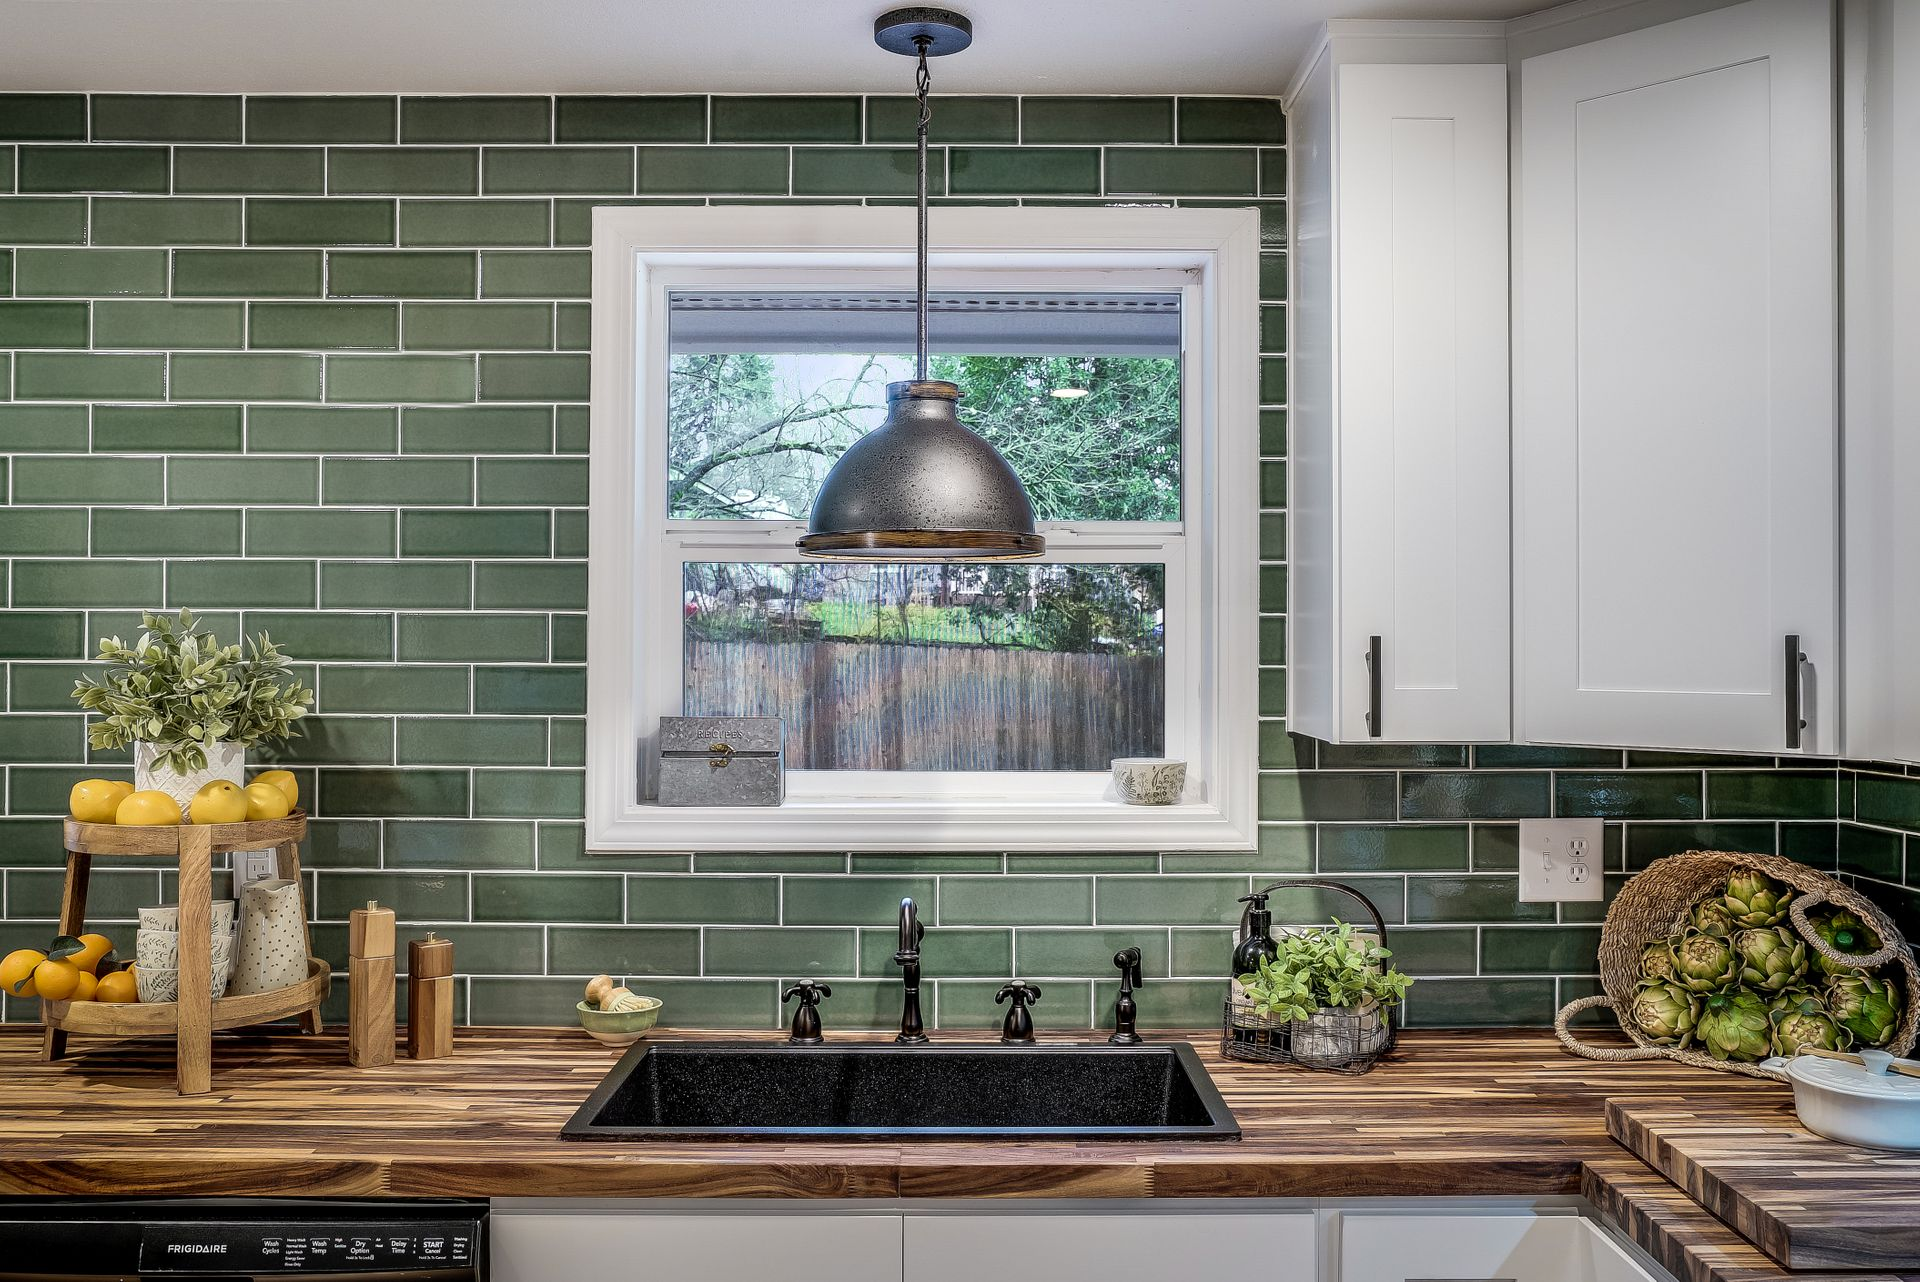 green kitchen sink and tile from professional kitchen contractors